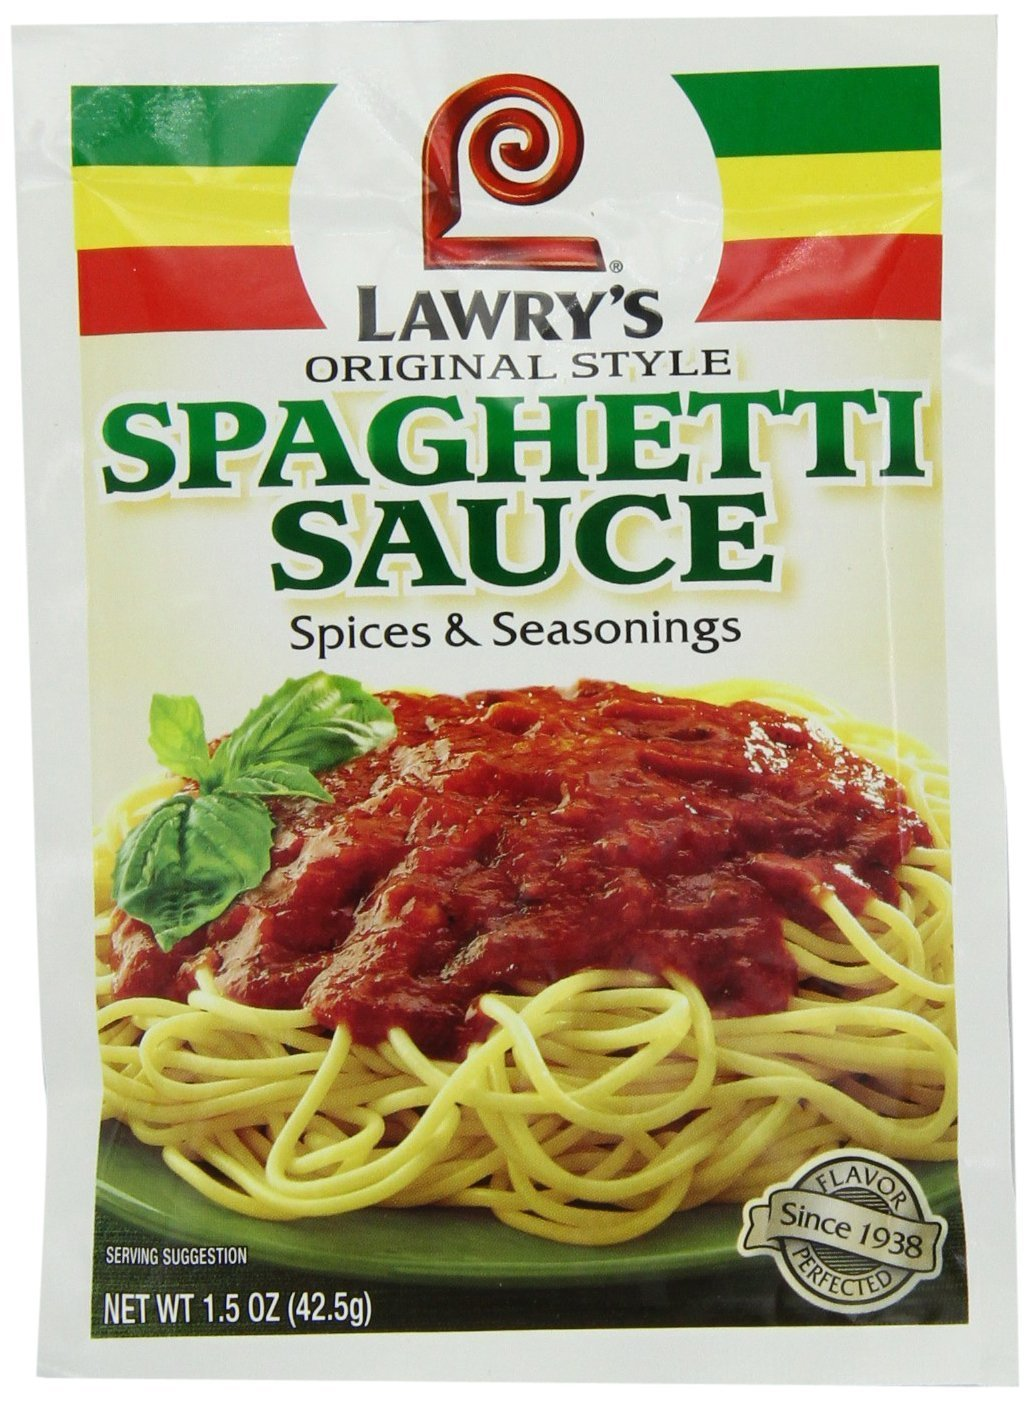 Lawry's Spaghetti Sauce Spice & Seasonings, Original Style, 1.5-Ounce Packets (5 Pack)